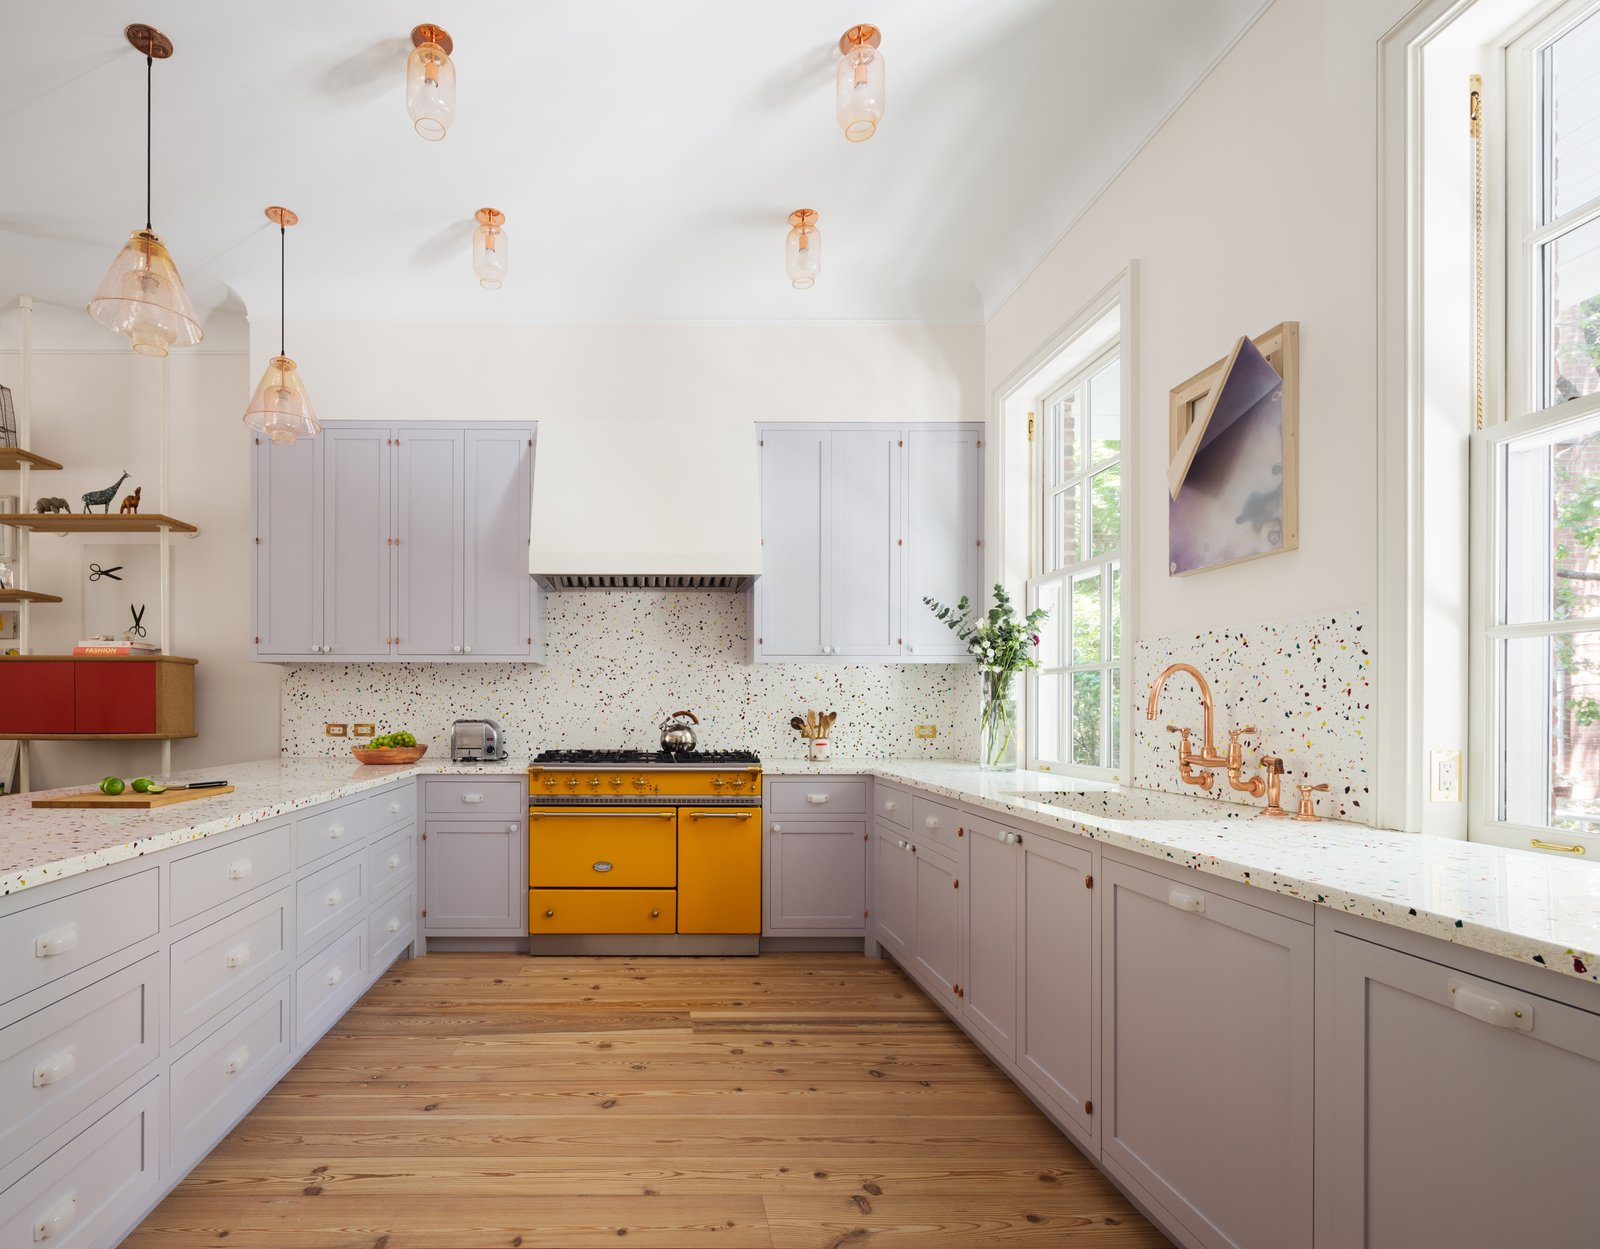 The kitchen features custom millwork with opal glass pulls, recycled glass terrazzo countertops and backsplash, copper plumbing, and a showstopping Lacanche range in Provence yellow.